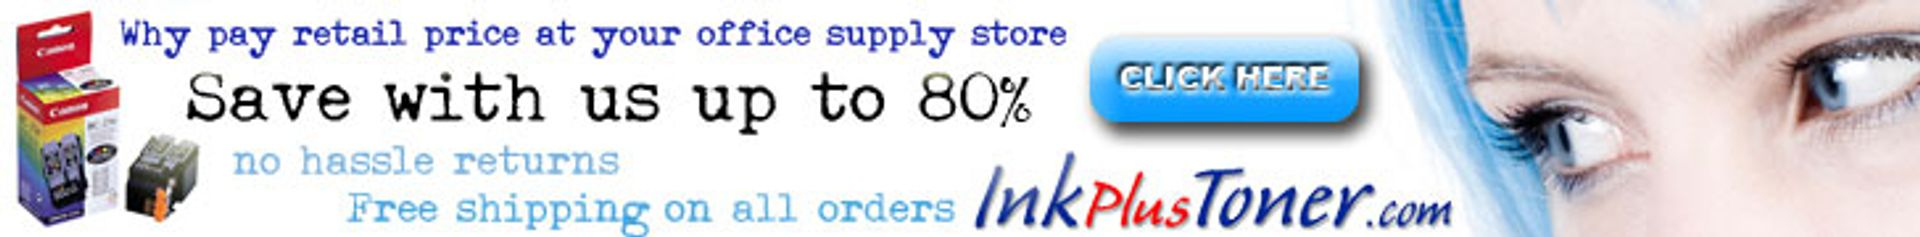 Ink Plus Toner discount pricing